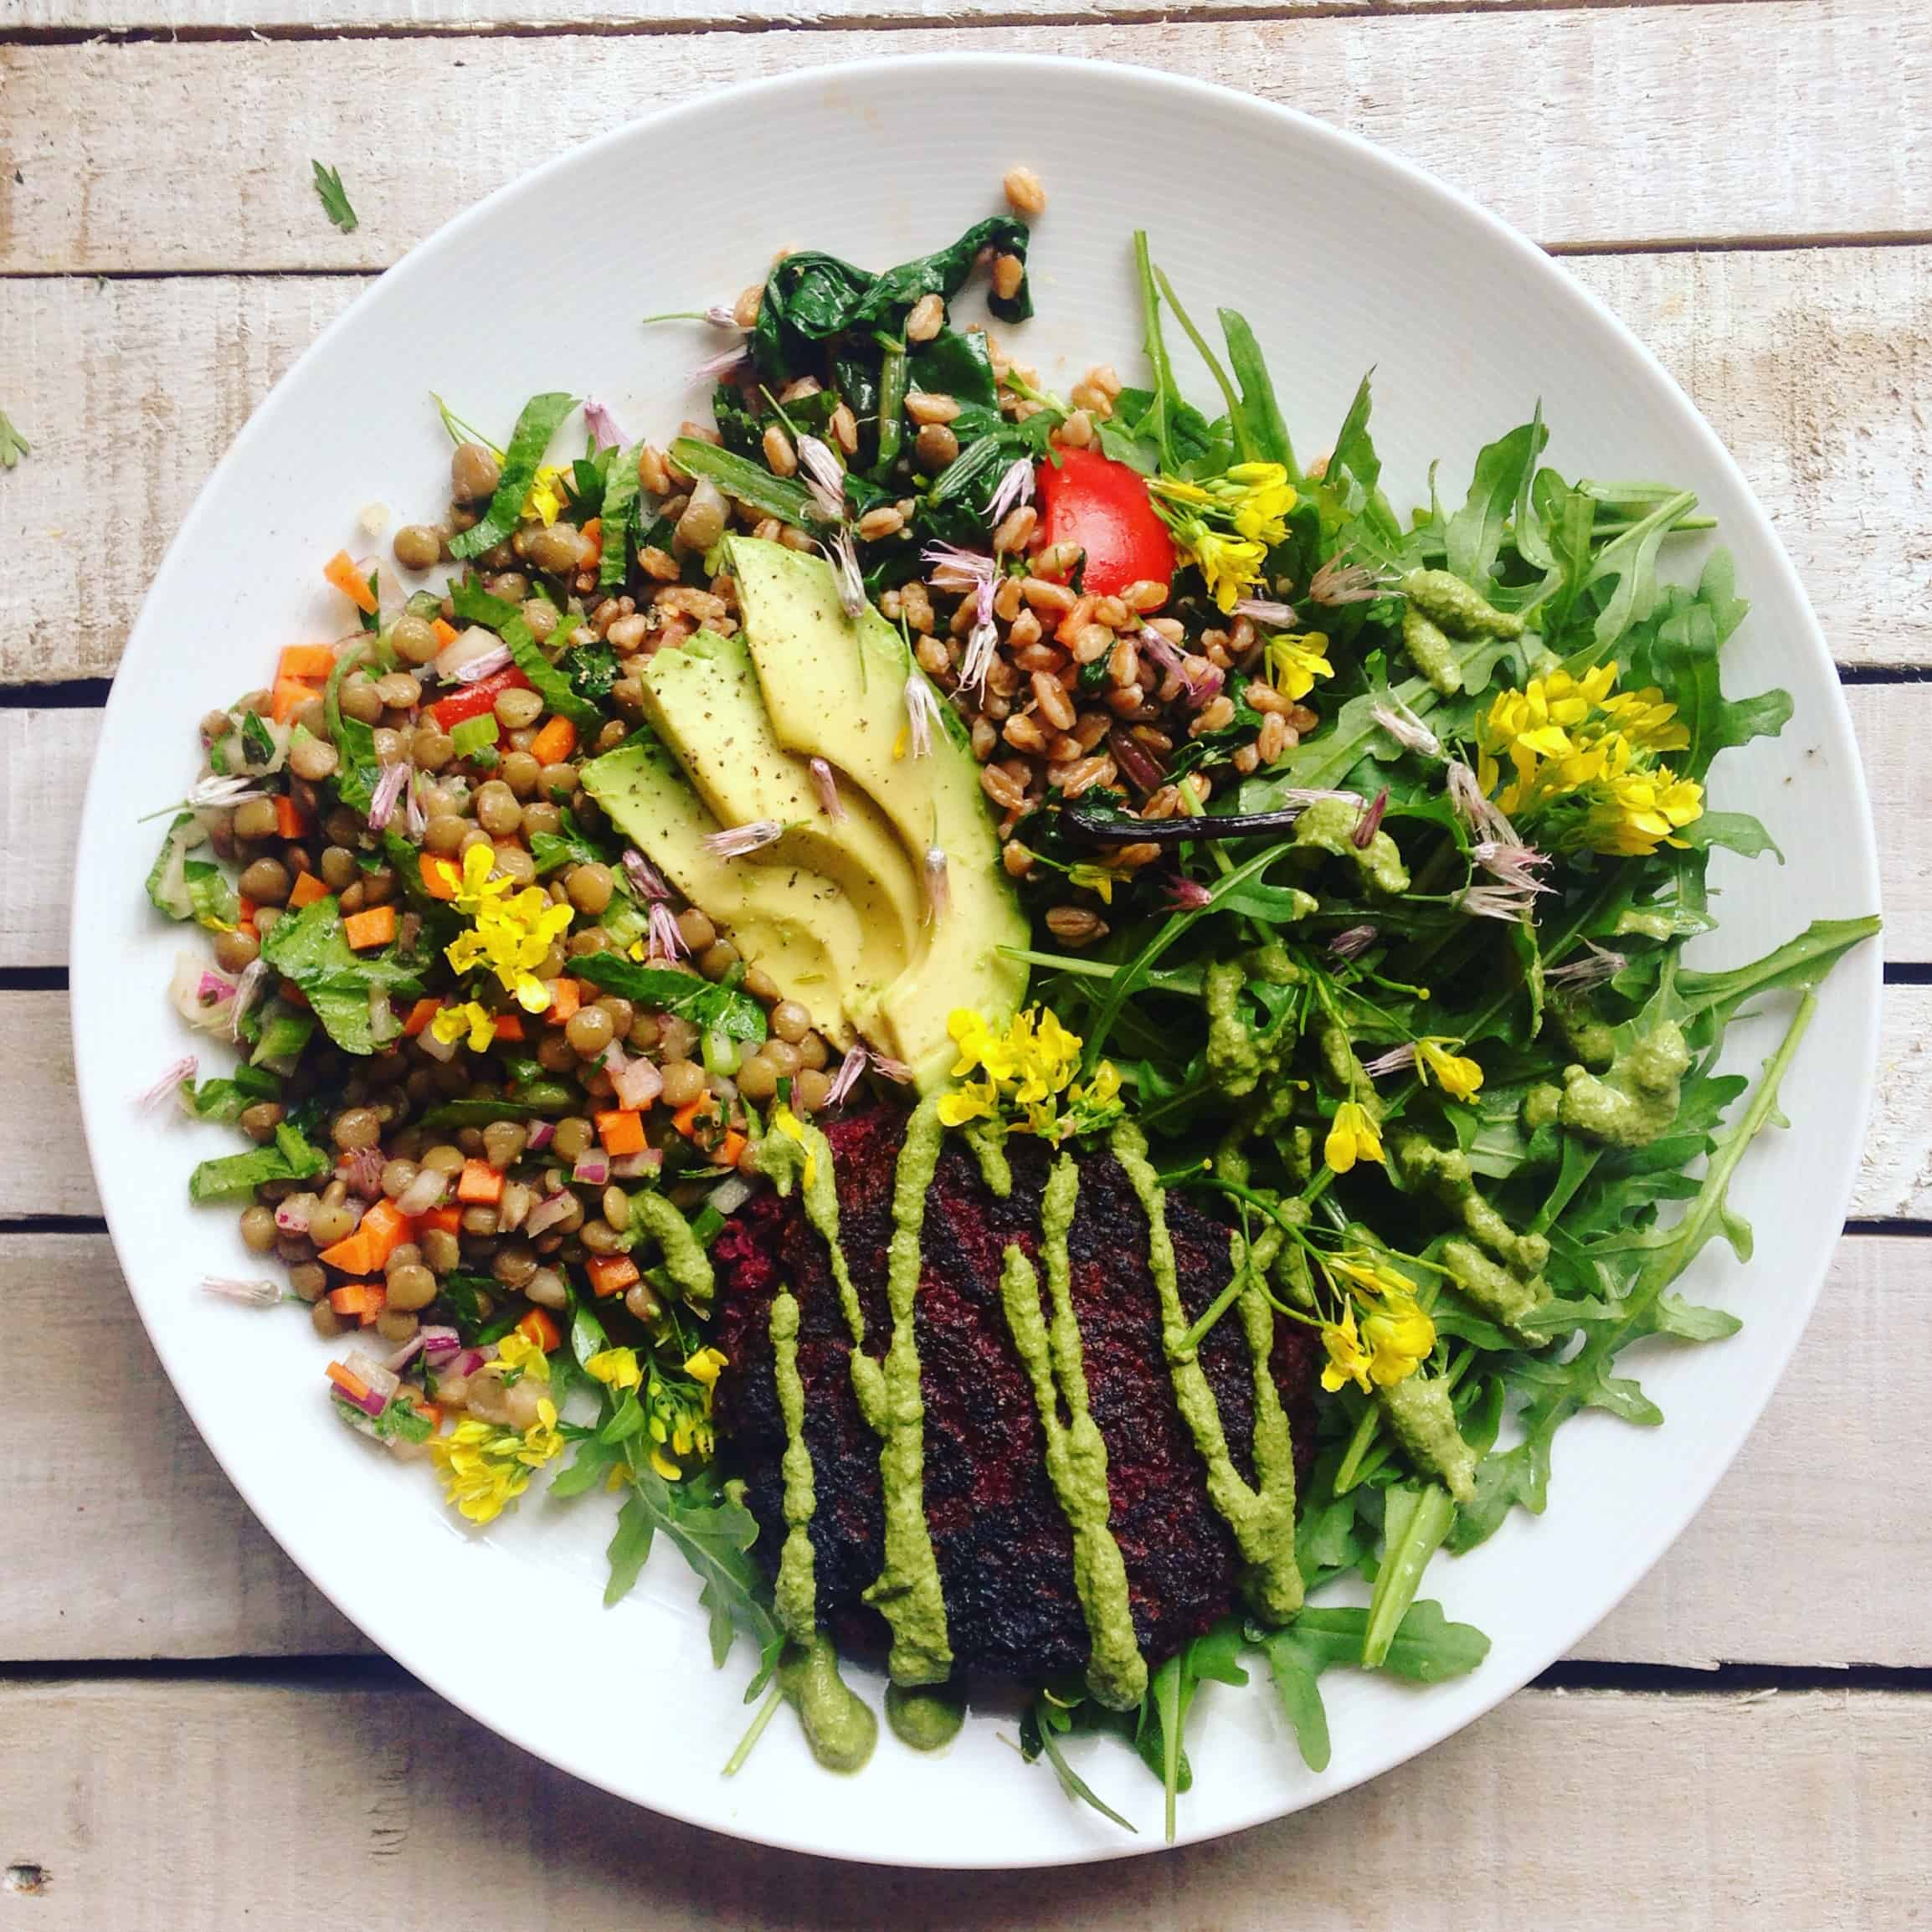 Top view of a large white plate with a green salad and avocado slices topped with a lentil beet burger.